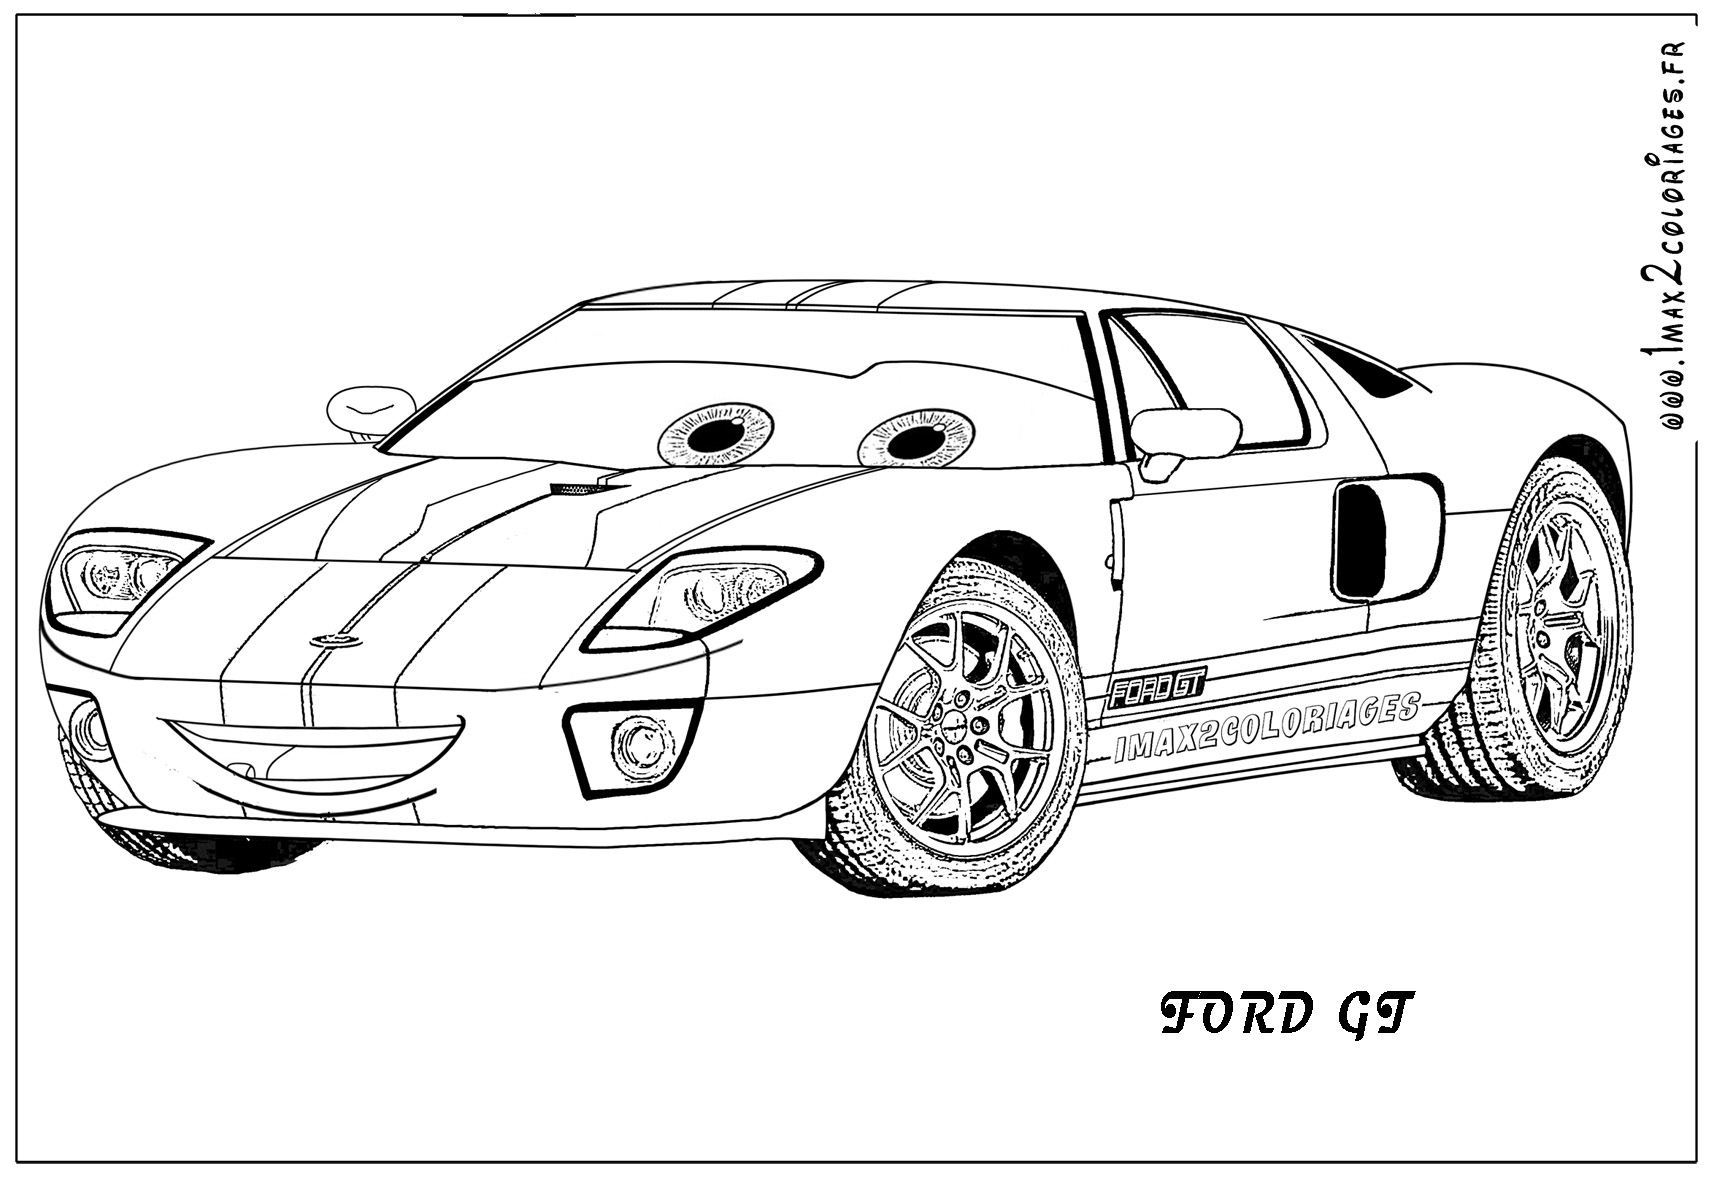 28 Corvette Coloring Pages Images | FREE COLORING PAGES